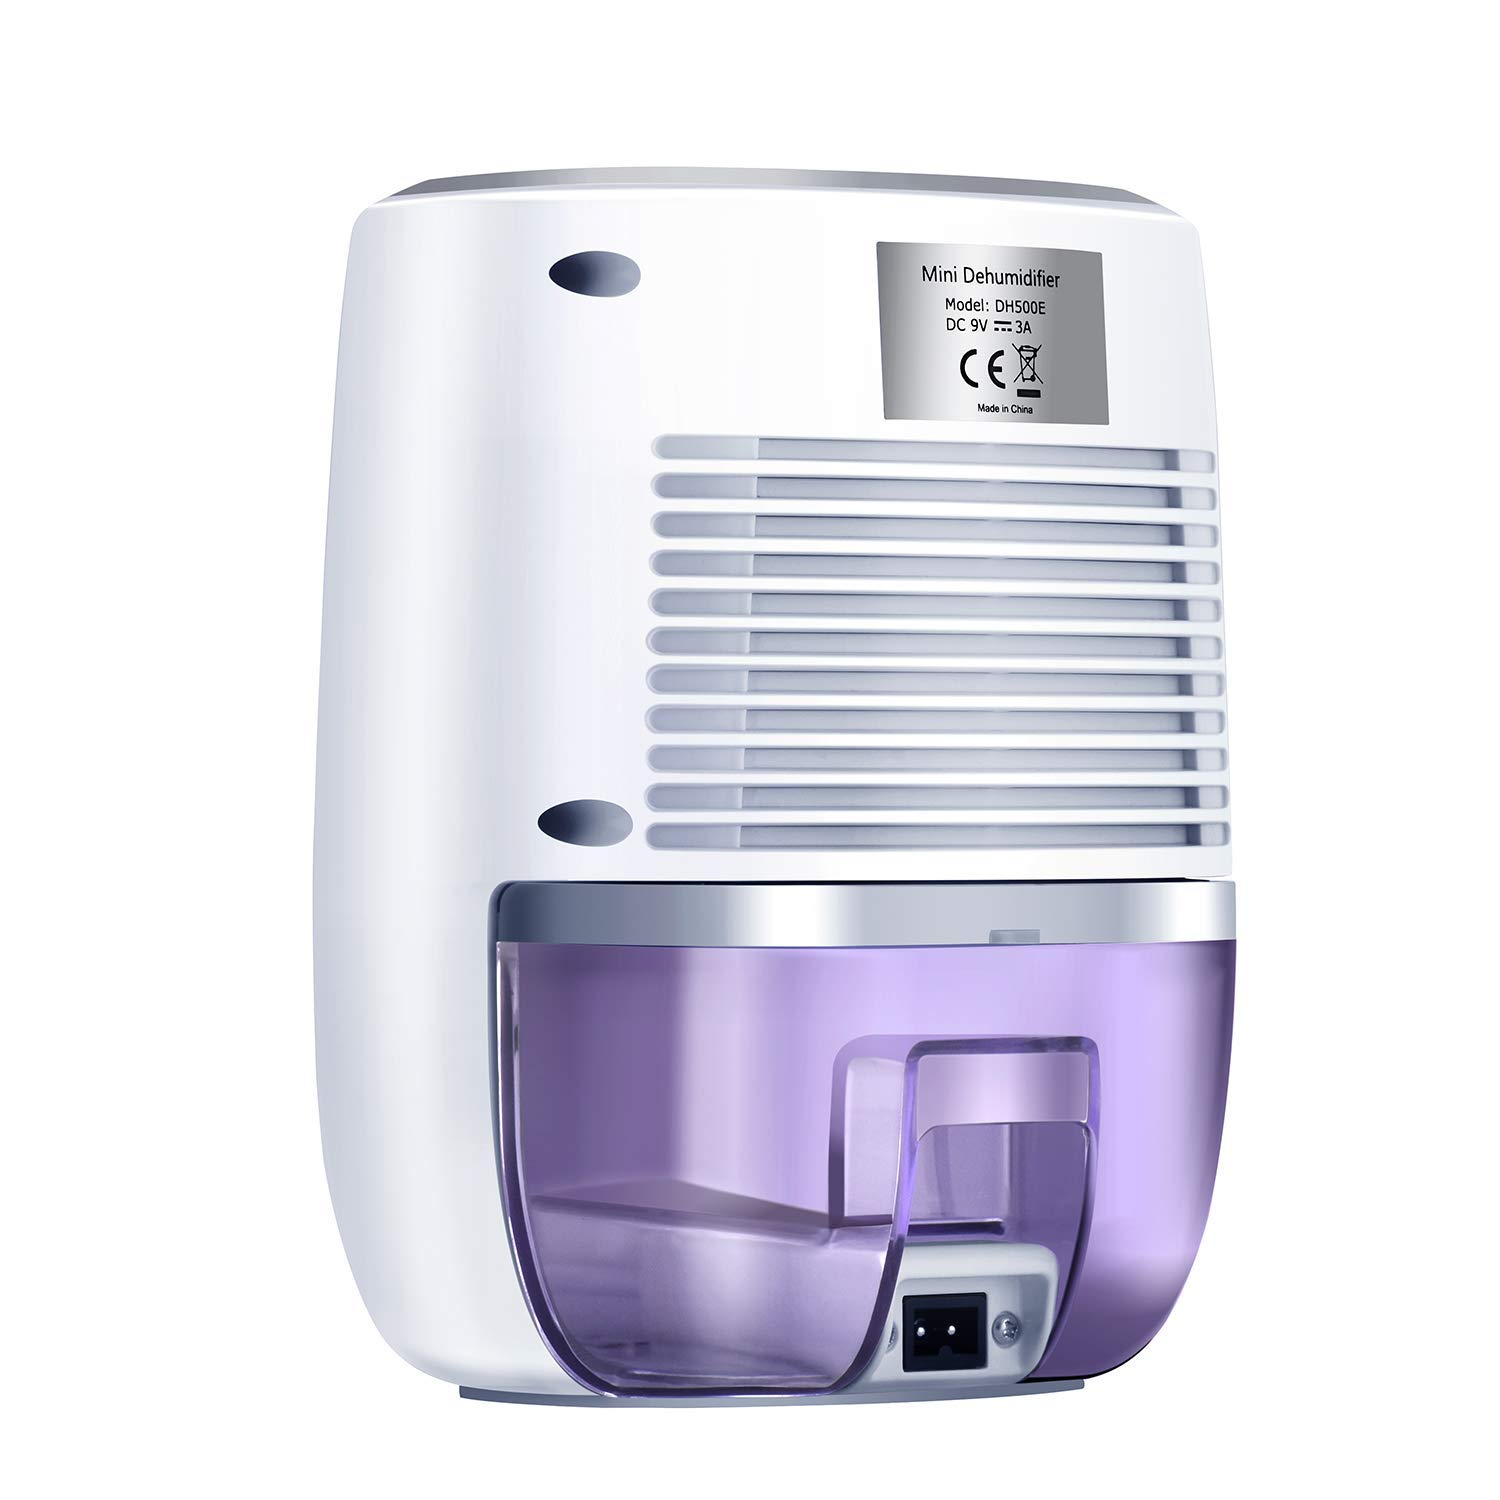 Great compact Dehumidifier